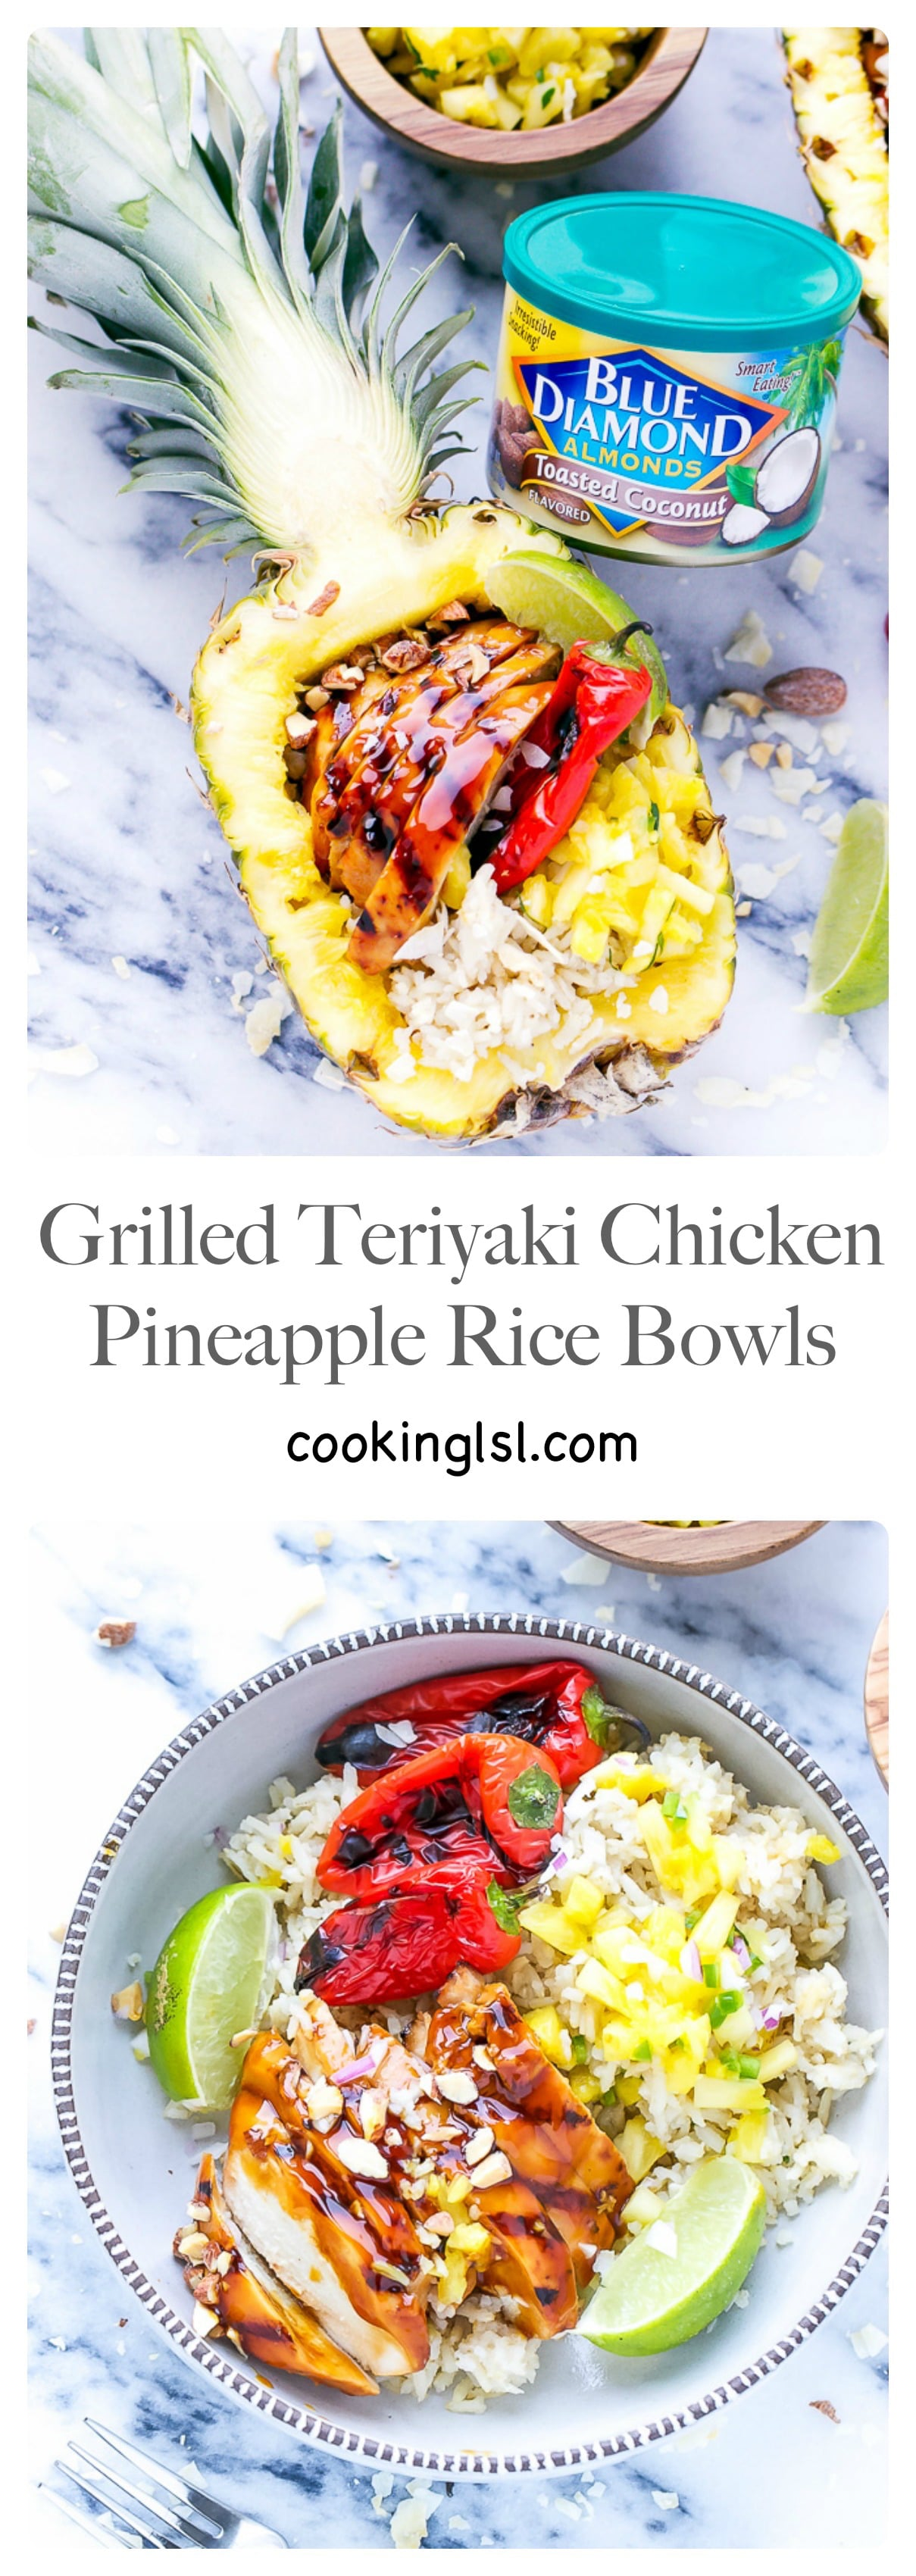 teriyaki-chicken-pineapple-rice-bowls-blue-diamond